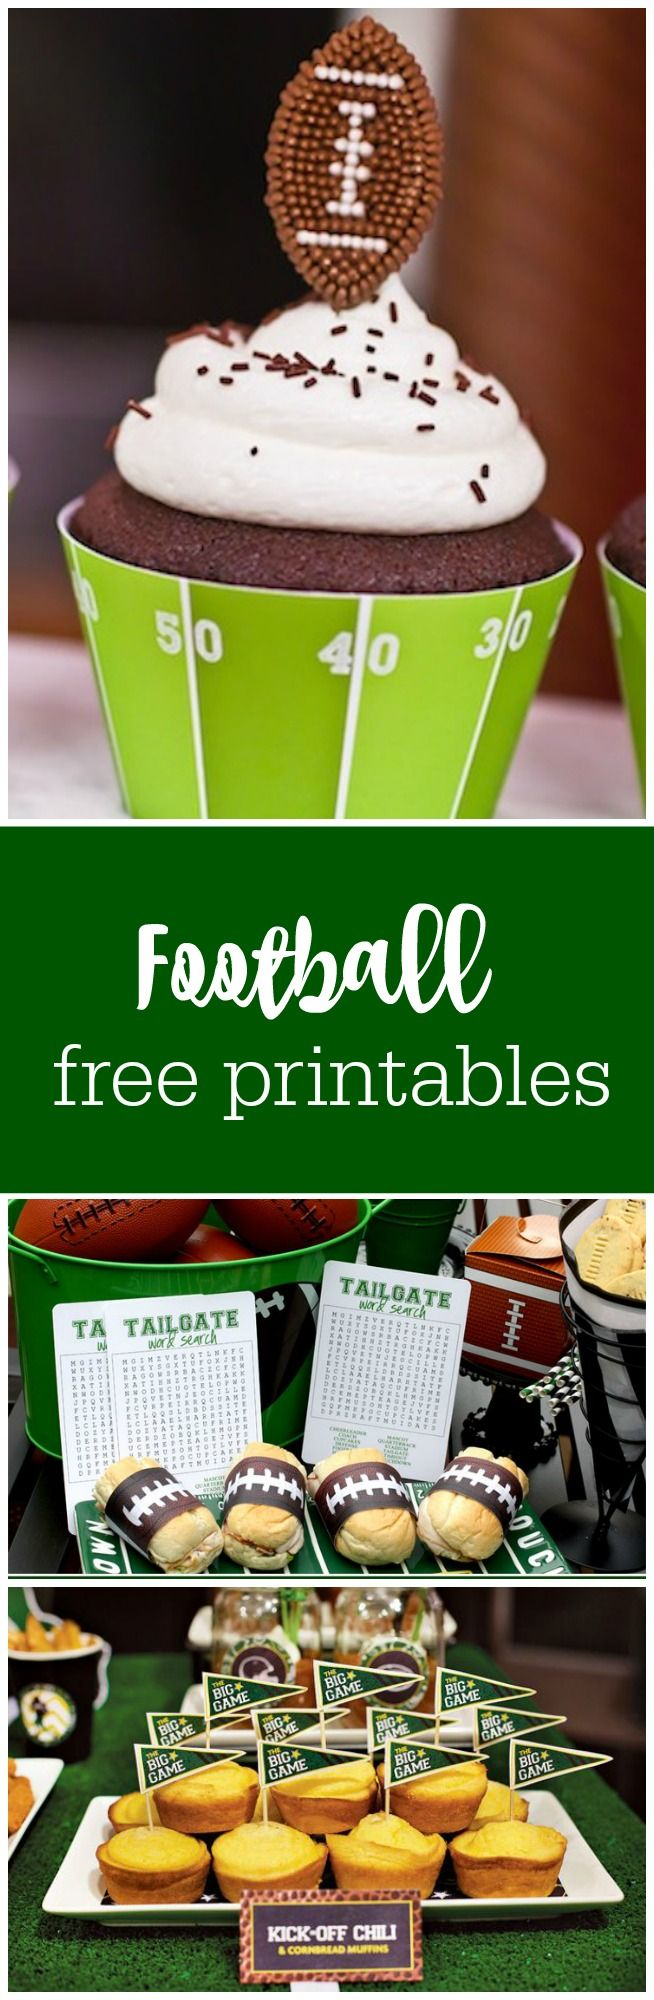 Football and tailgating free printables curated by The Party Teacher   http://thepartyteacher.com/2013/02/01/freebie-friday-free-football-printables/